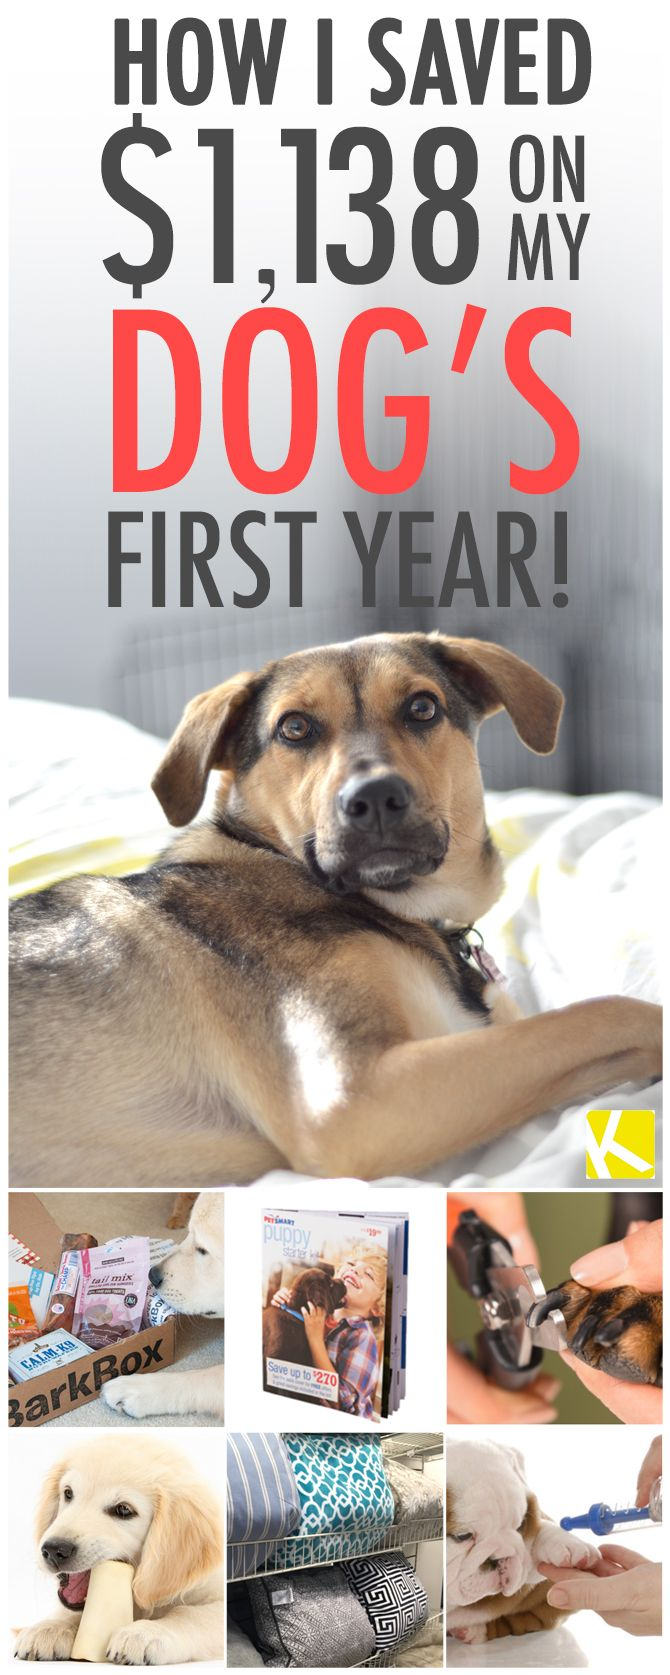 How I Saved $1,138 on My Dog's First Year!